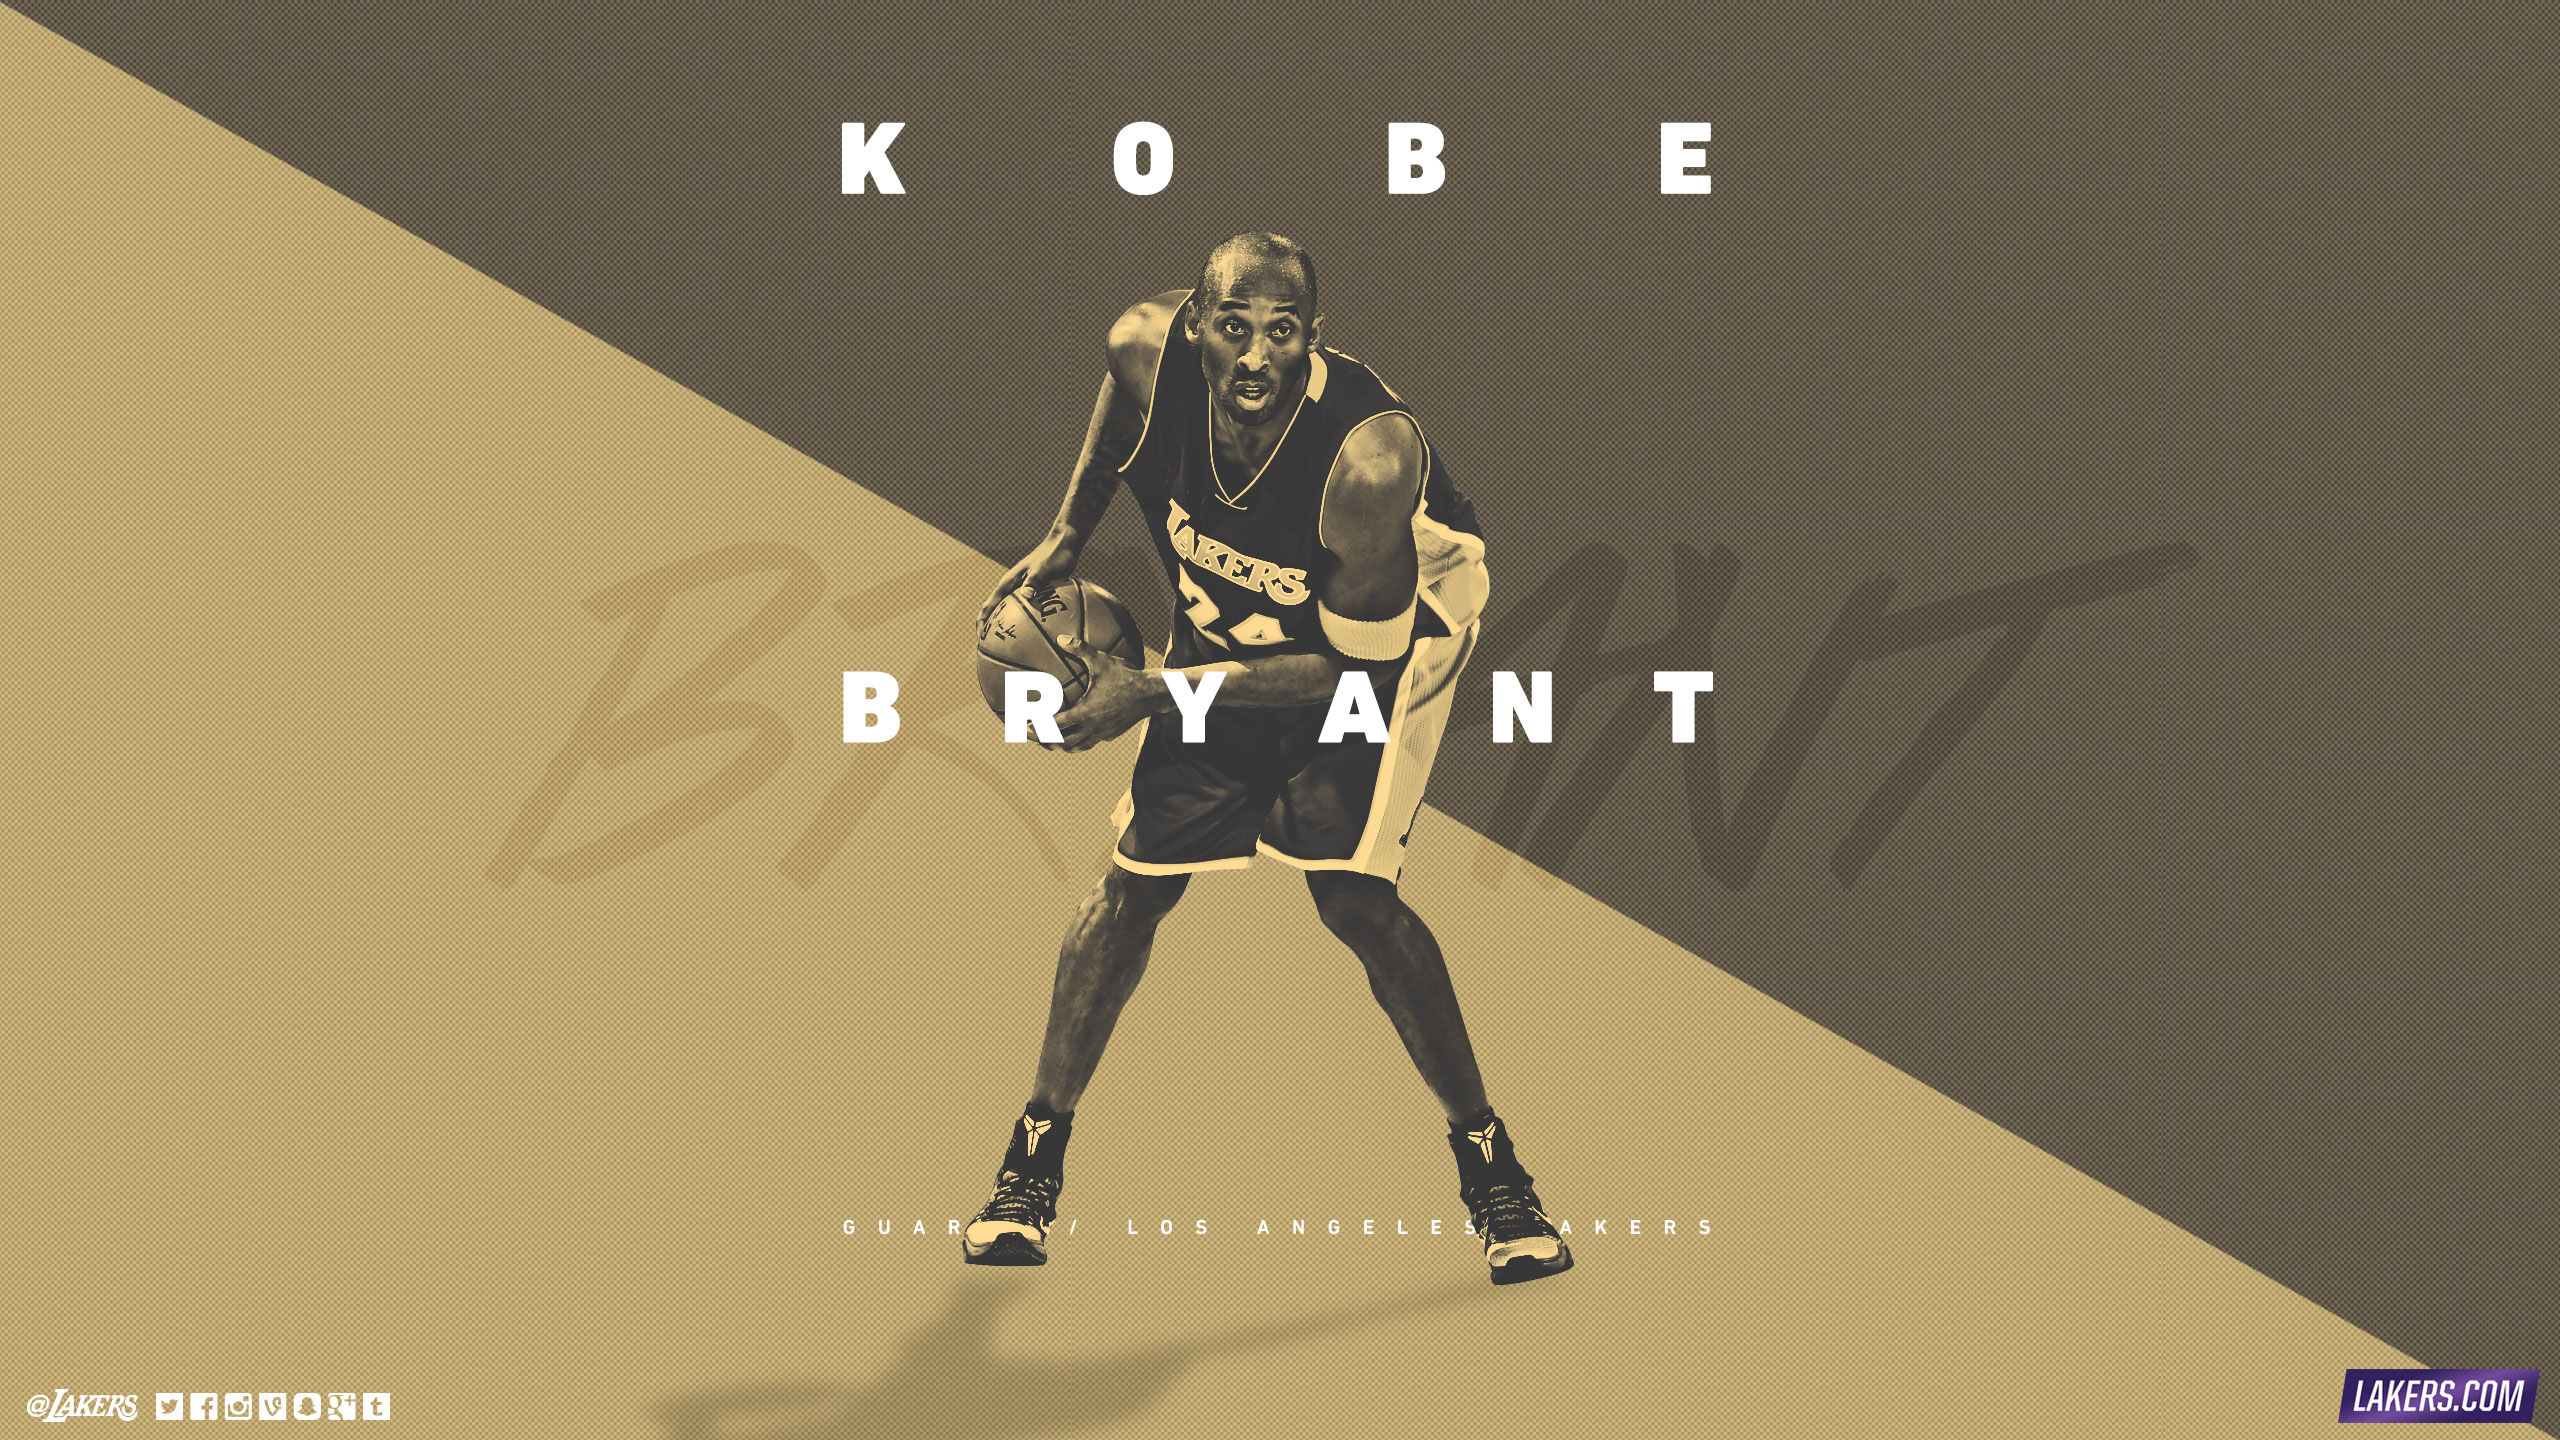 Kobe Bryant Logo Wallpapers High Quality Is Cool Wallpapers